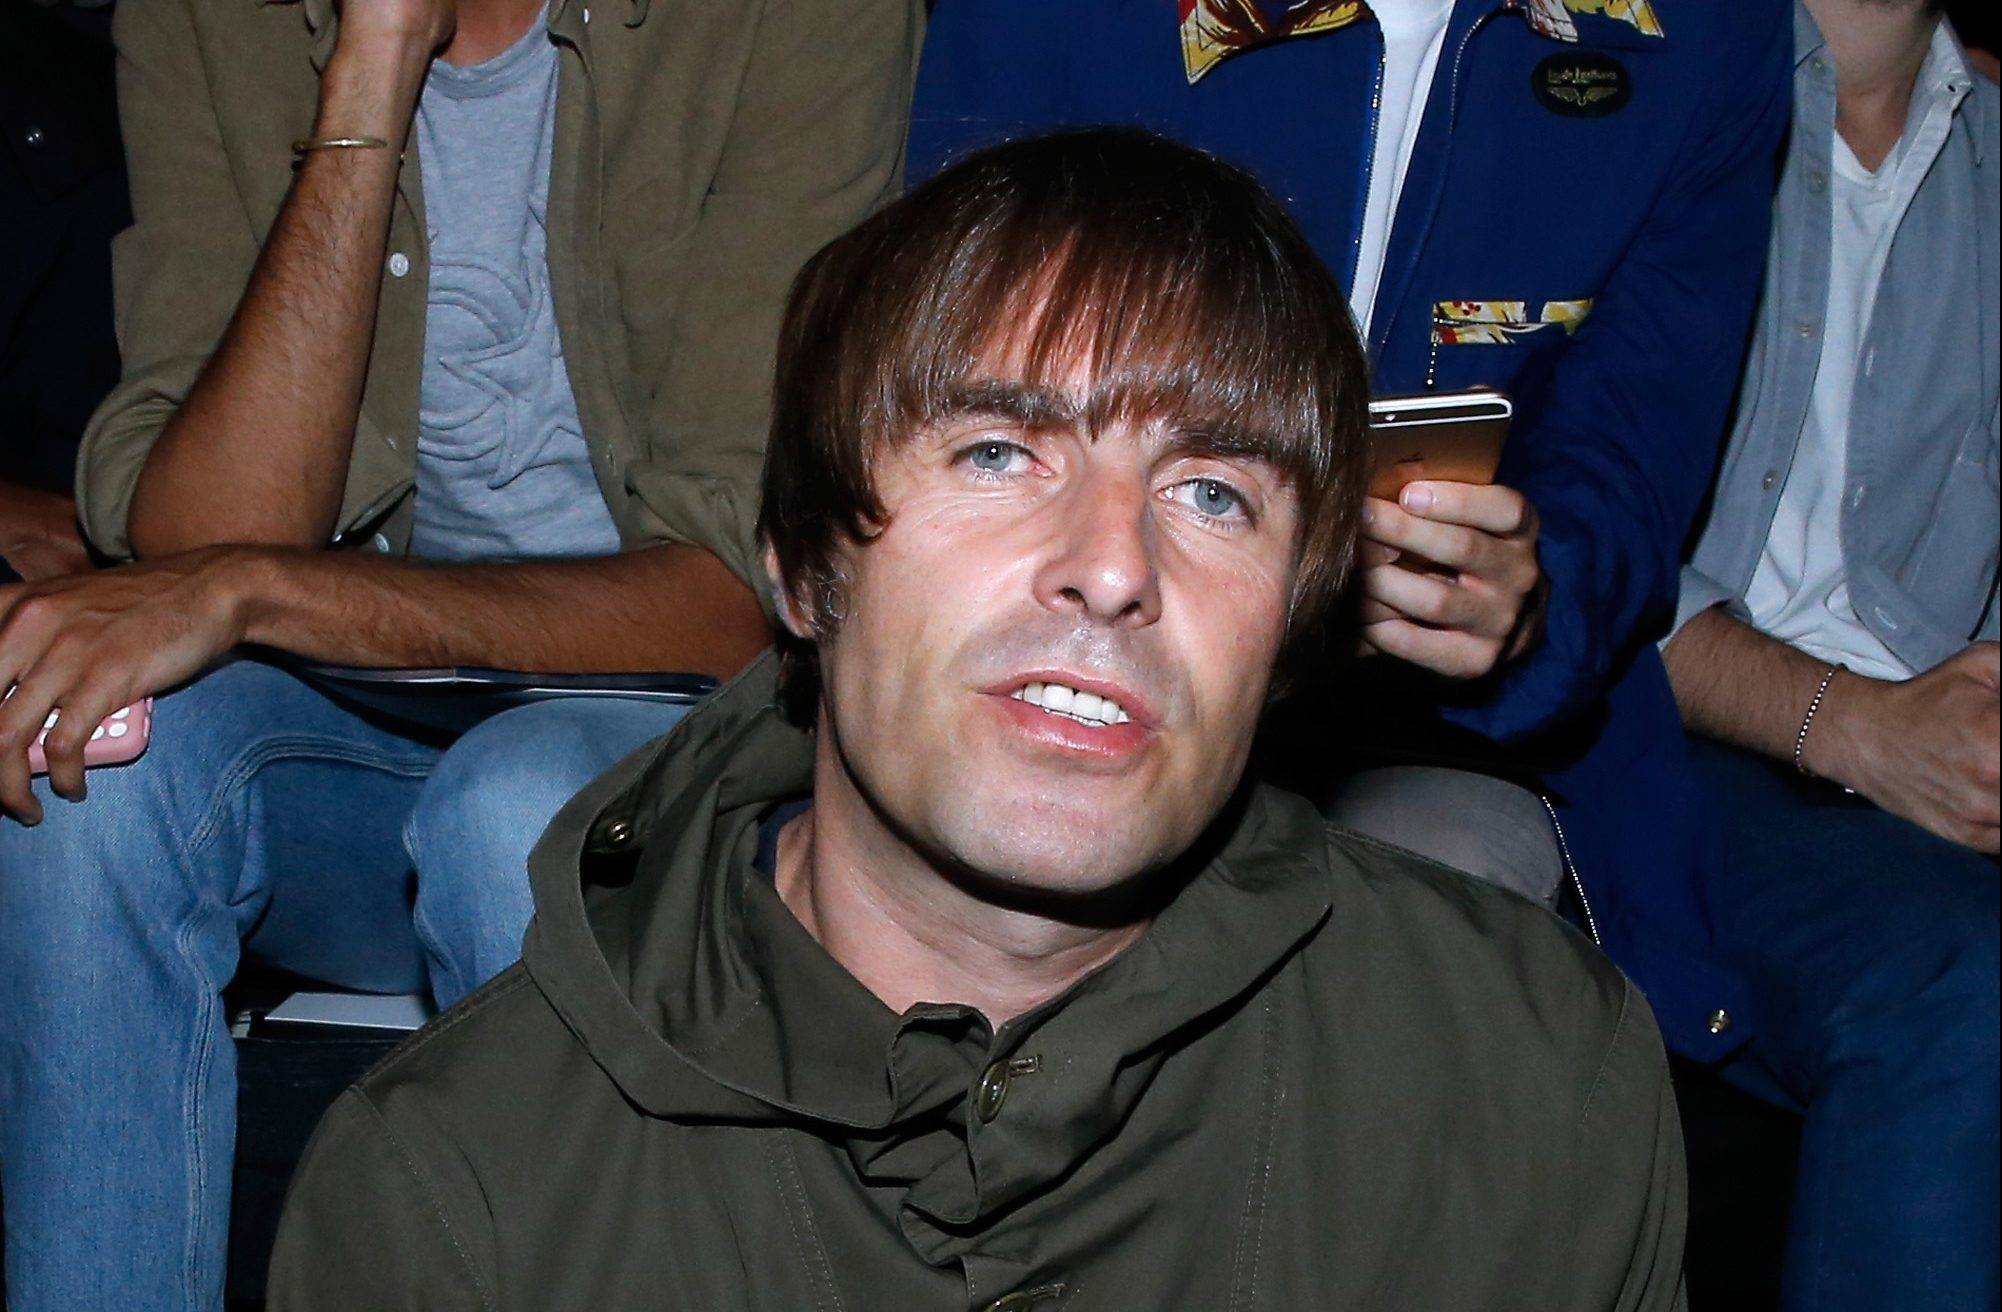 Liam Gallagher claims fame changed his brother Noel Gallagher